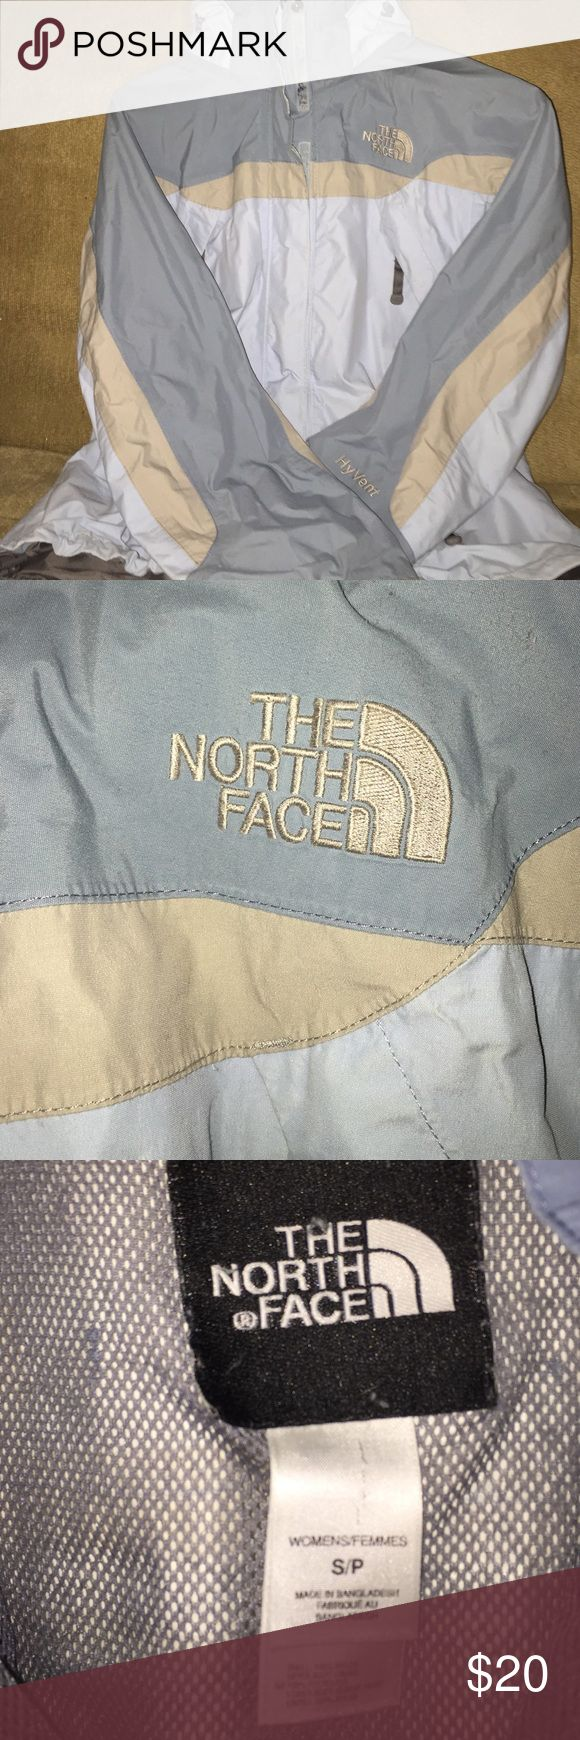 **NORTHFACE JACKET** Only have worn this jacket a handful of times. Keeps me very warm. Great for football games and other sporting events. It also has a waterproof material on the outside plus a hood. (Coming from a smoke- free home) size small •OPEN TO OFFERS• The North Face Jackets & Coats